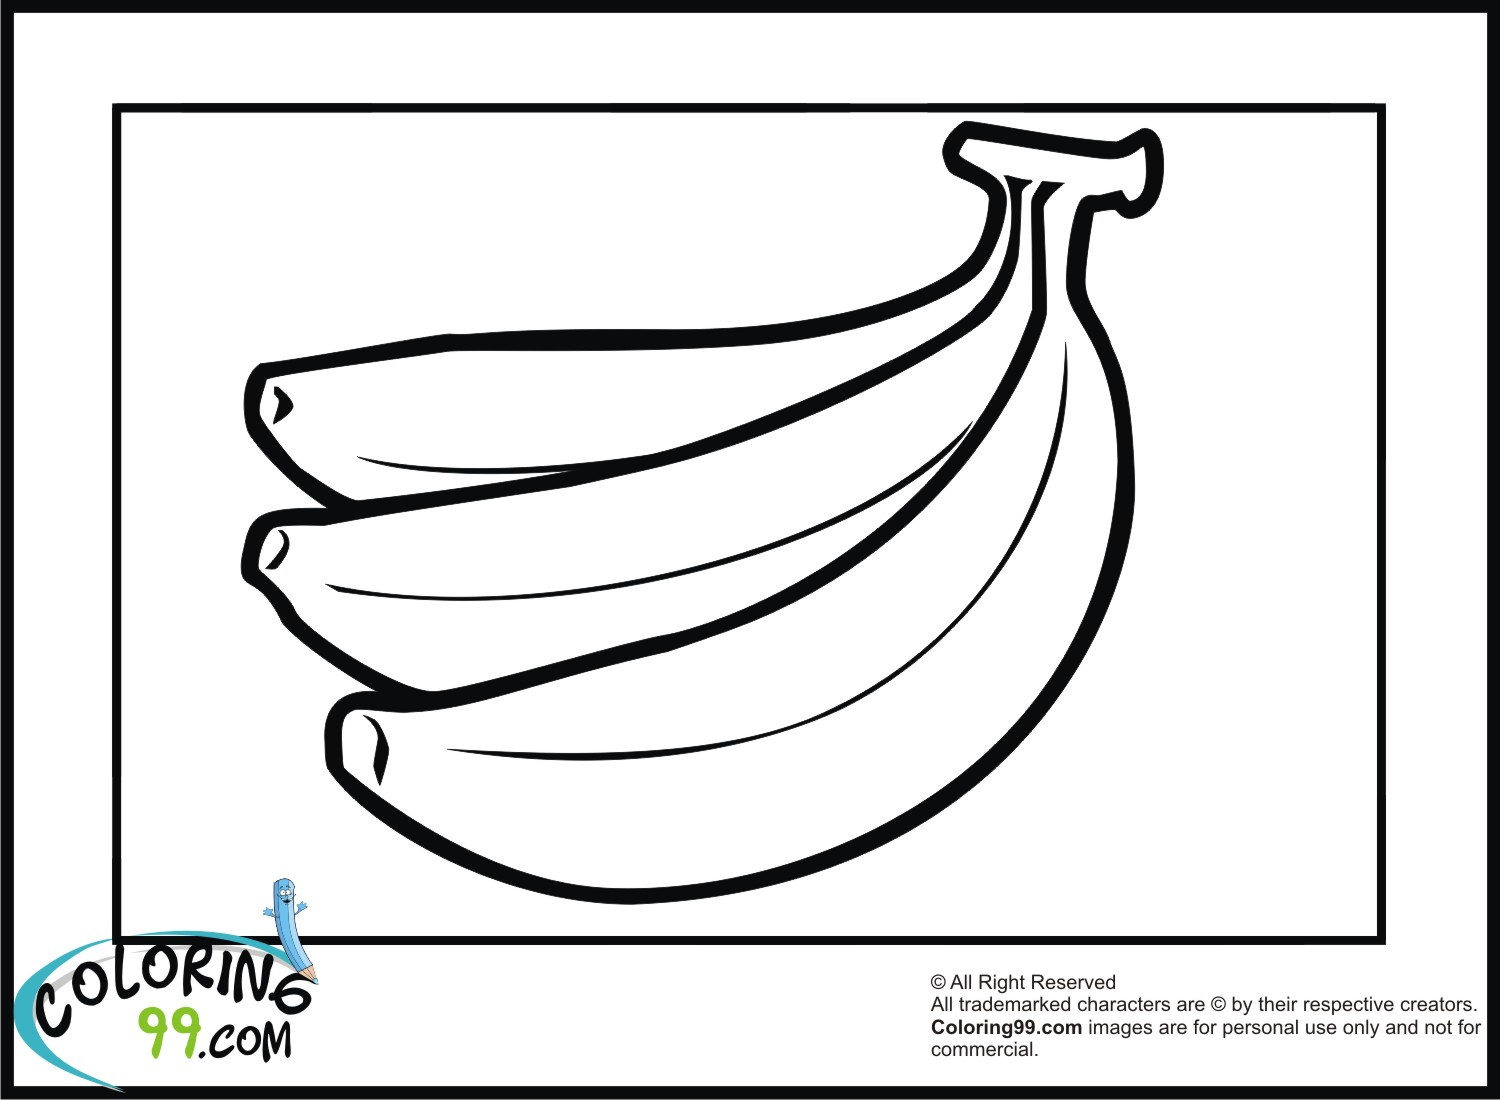 Banana Coloring Pages Team colors